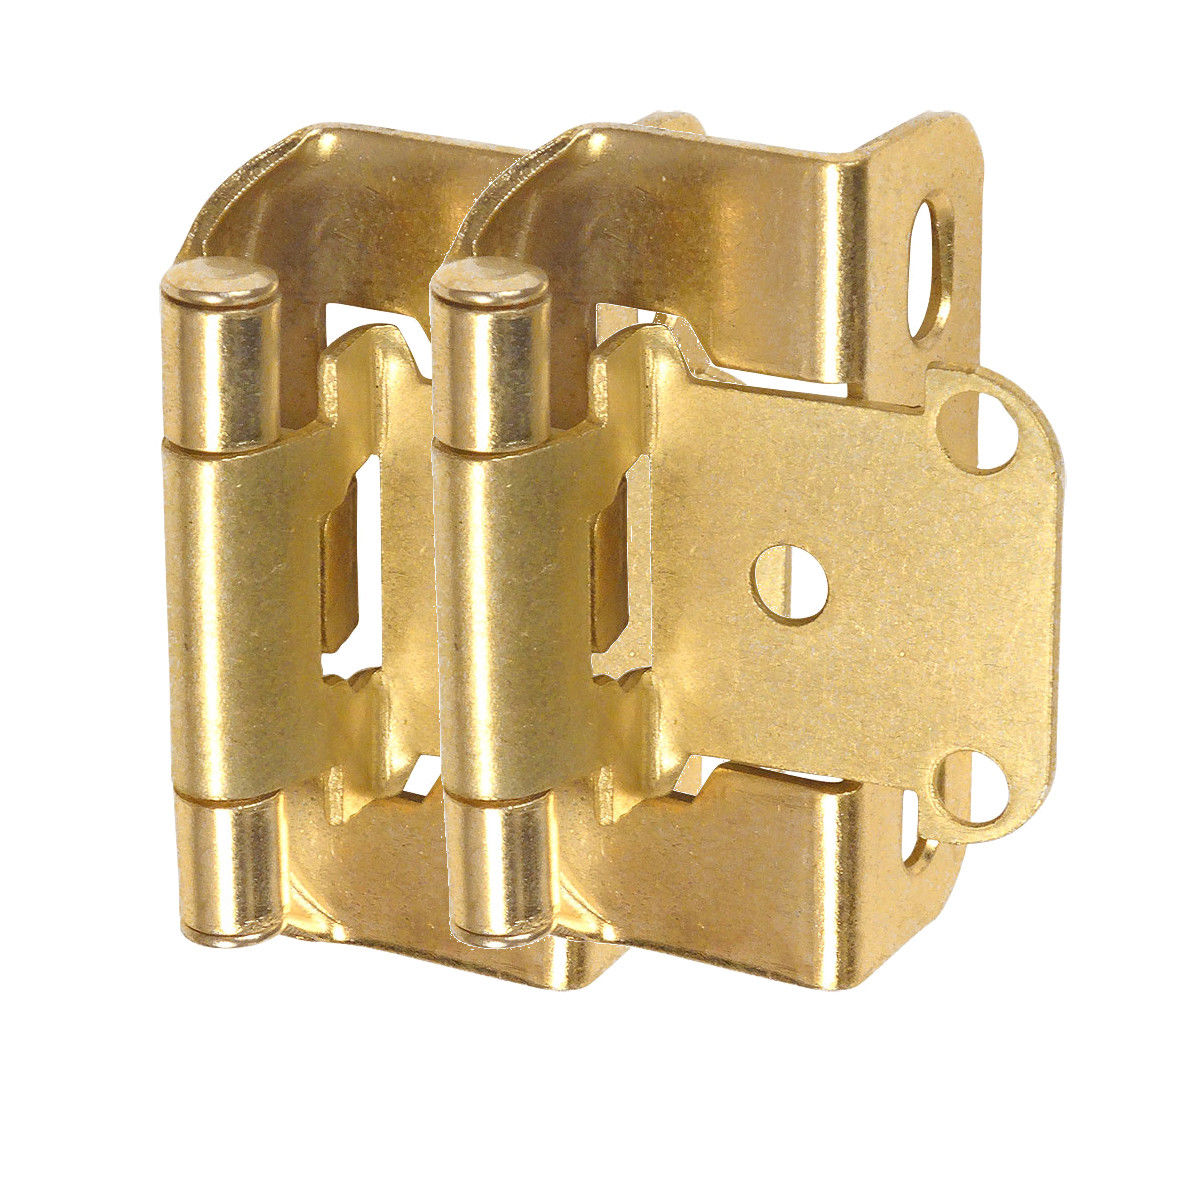 "Cosmas 27550-BB Brushed Brass Self Closing Partial Wrap Cabinet Hinge 1/2"" Inch Overlay (Pair) [27550-BB]"